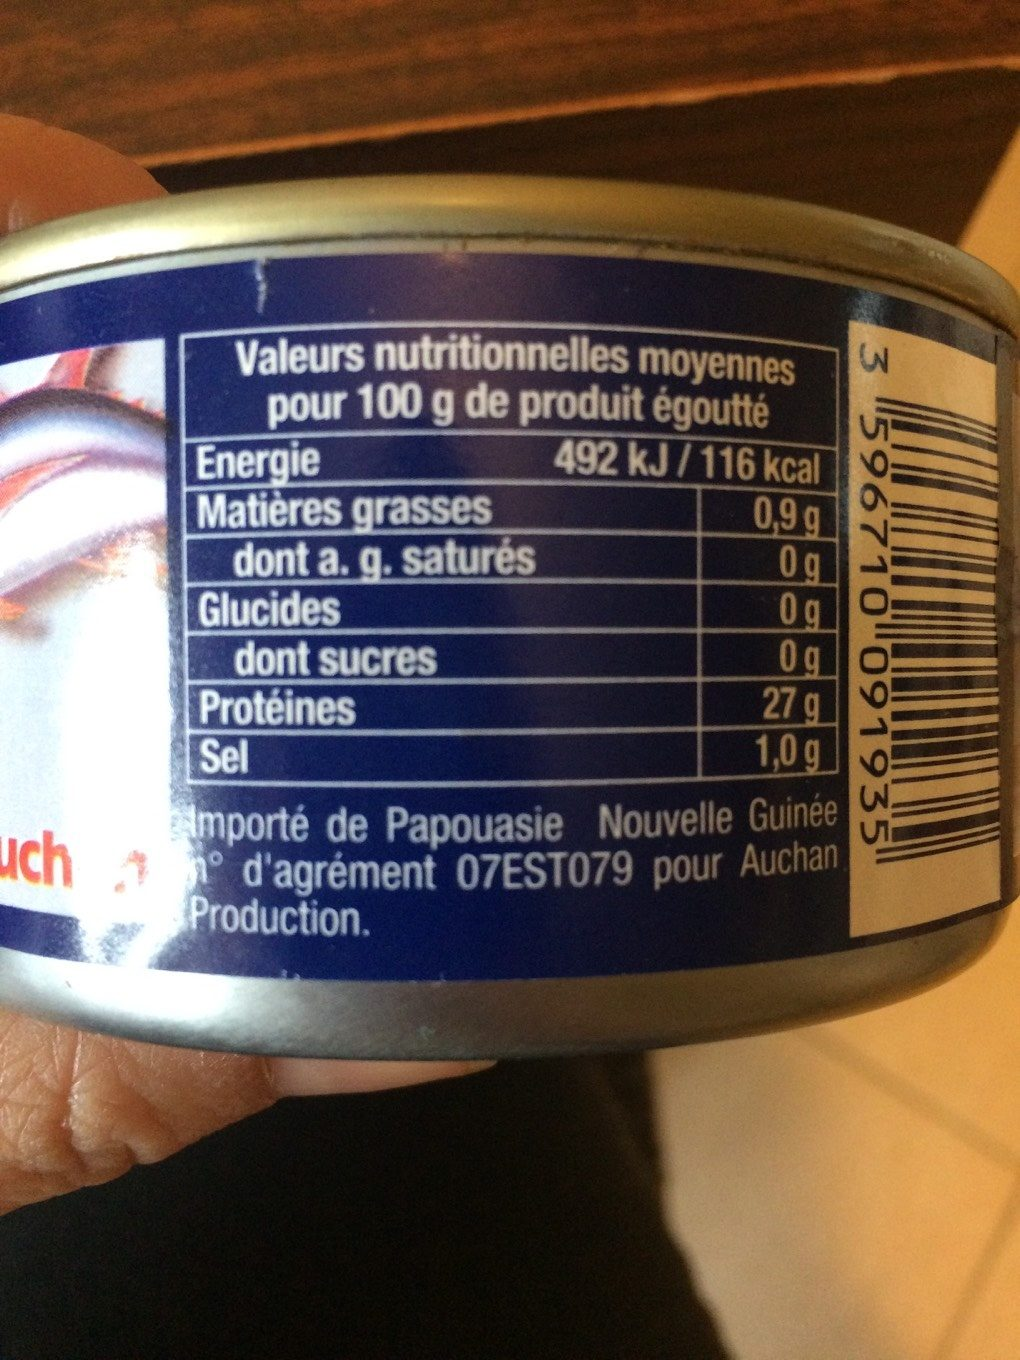 Thon Albacore au naturel (Lot de 2 boîtes) - Nutrition facts - fr